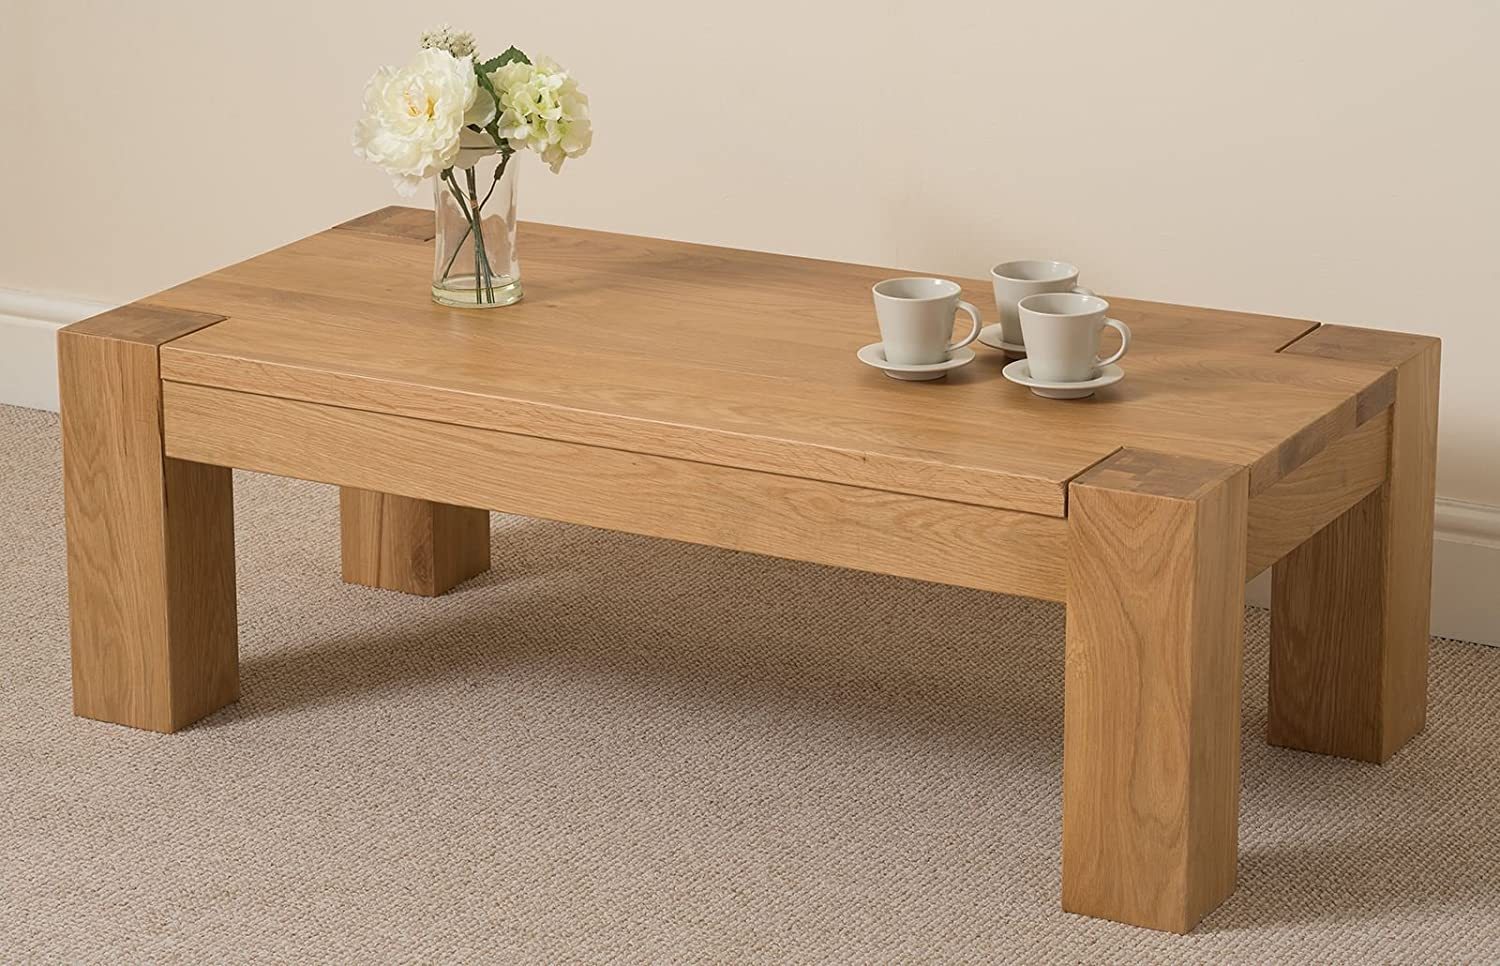 Kuba Chunky Solid Oak Large 120 X 40 60 Cm Coffee Table